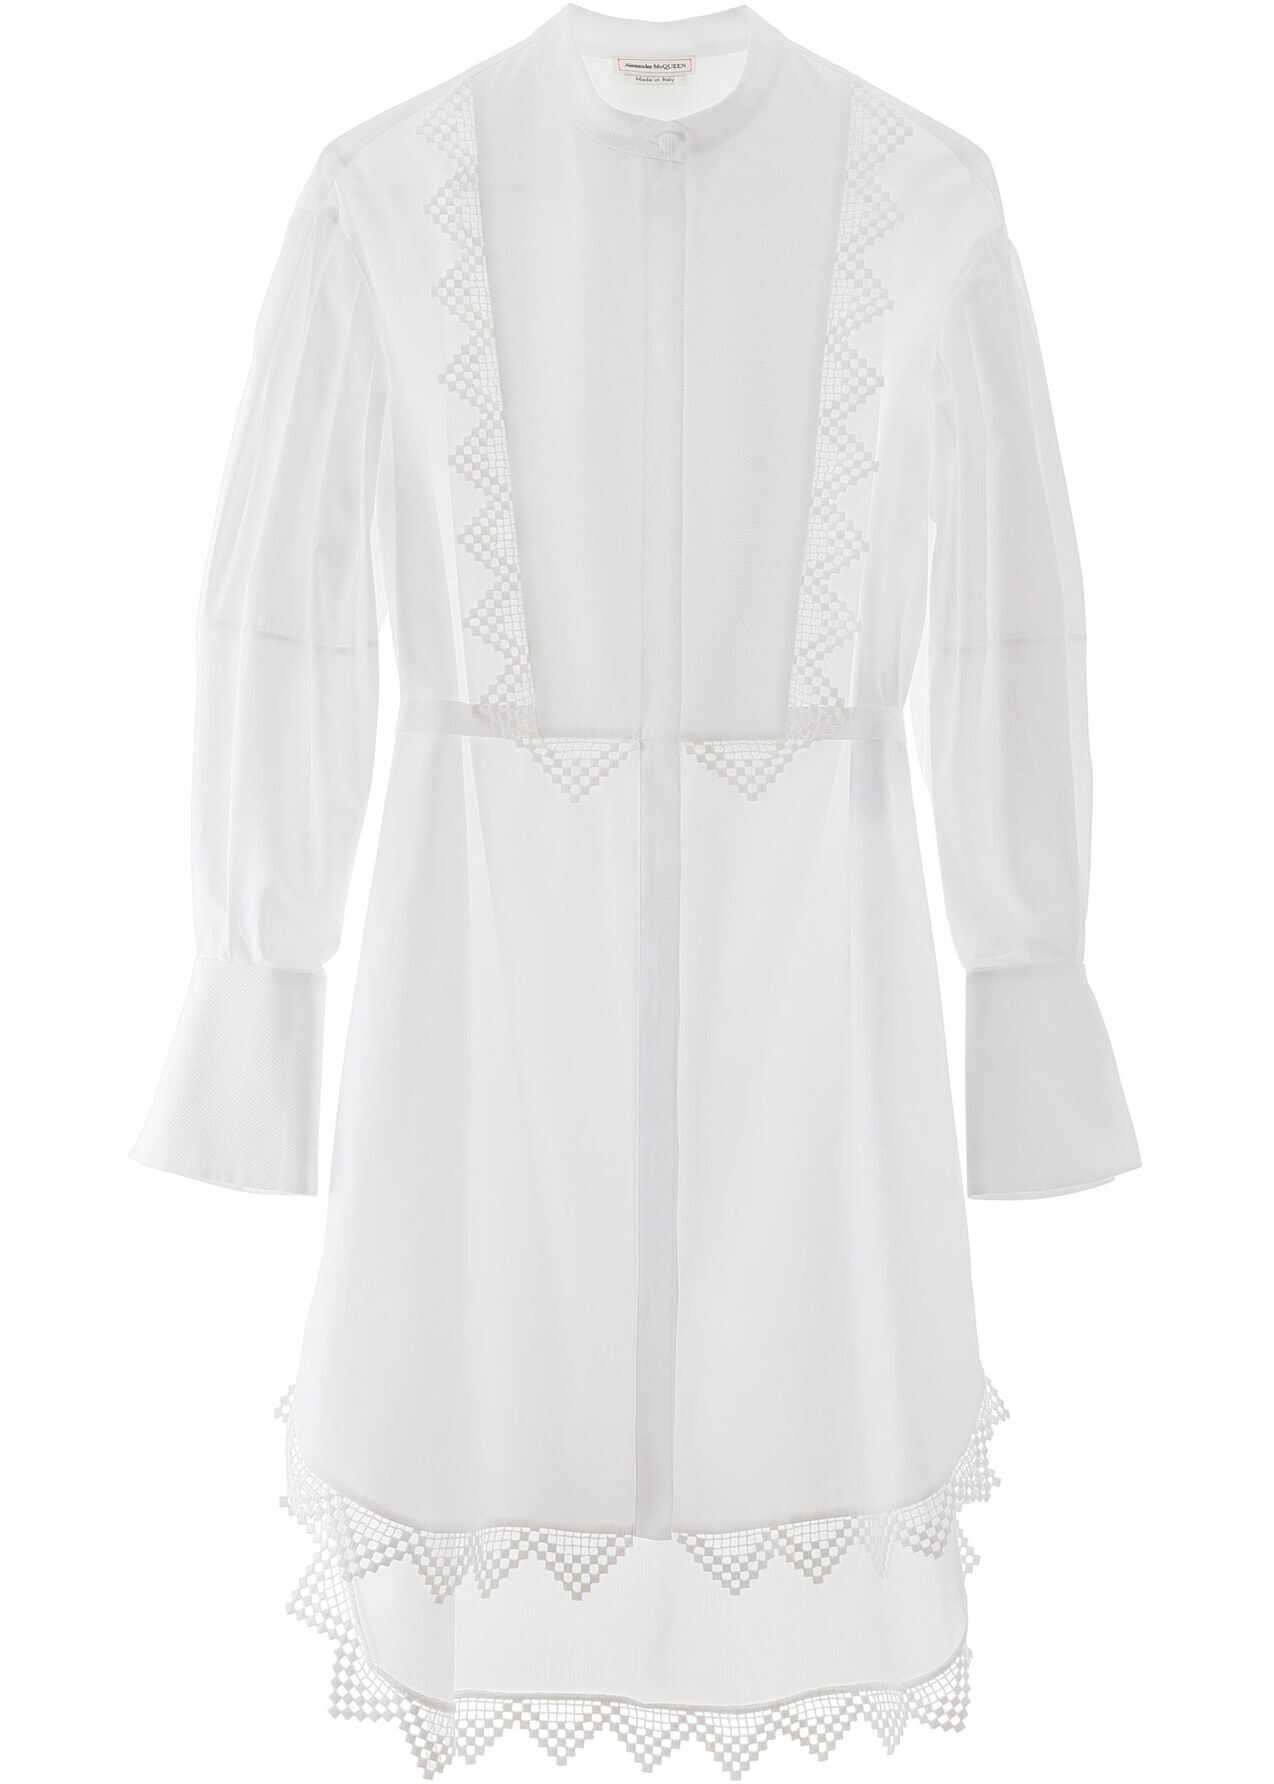 Alexander McQueen Maxi Shirt With Lace Details OPTICALWHITE